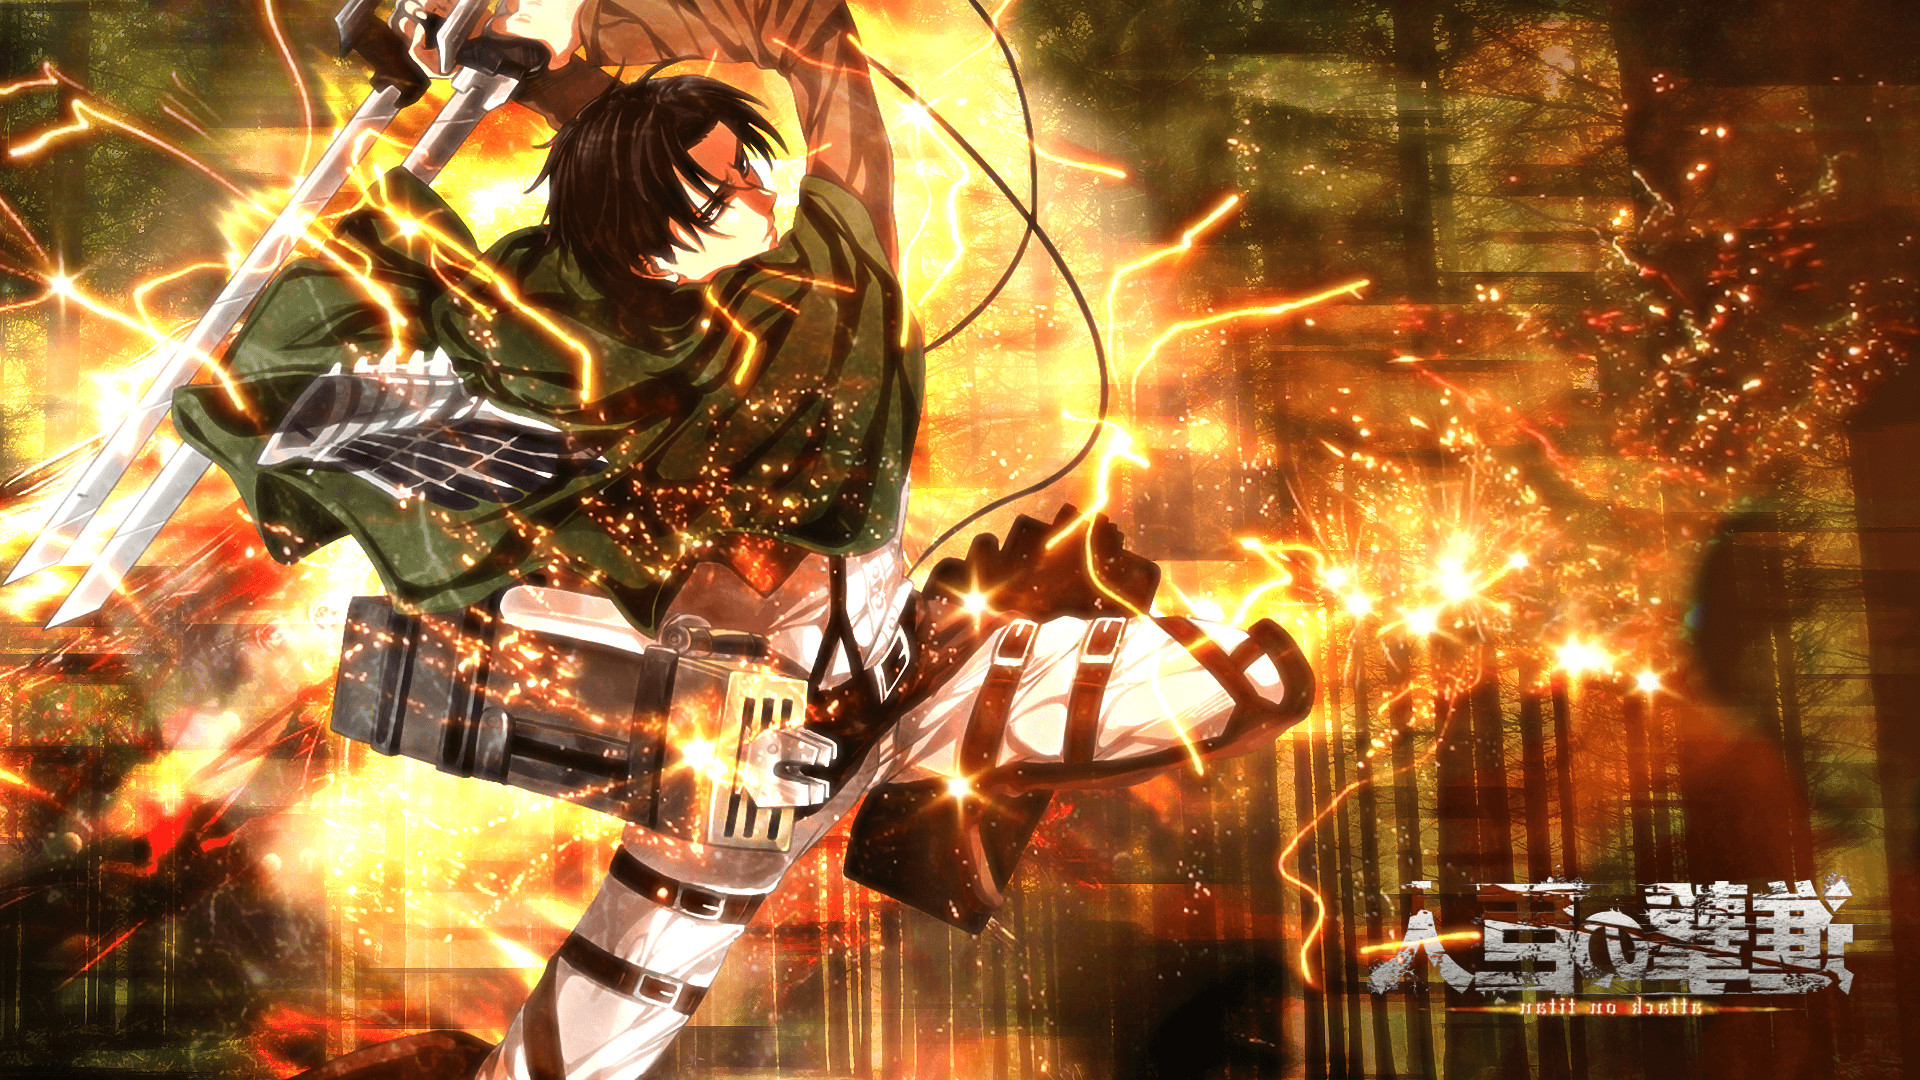 Shingeki No Kyojin Levi Ackerman Anime Wallpapers Hd Shingeki No Kyojin Wallpaper Hd 1920x1080 Download Hd Wallpaper Wallpapertip